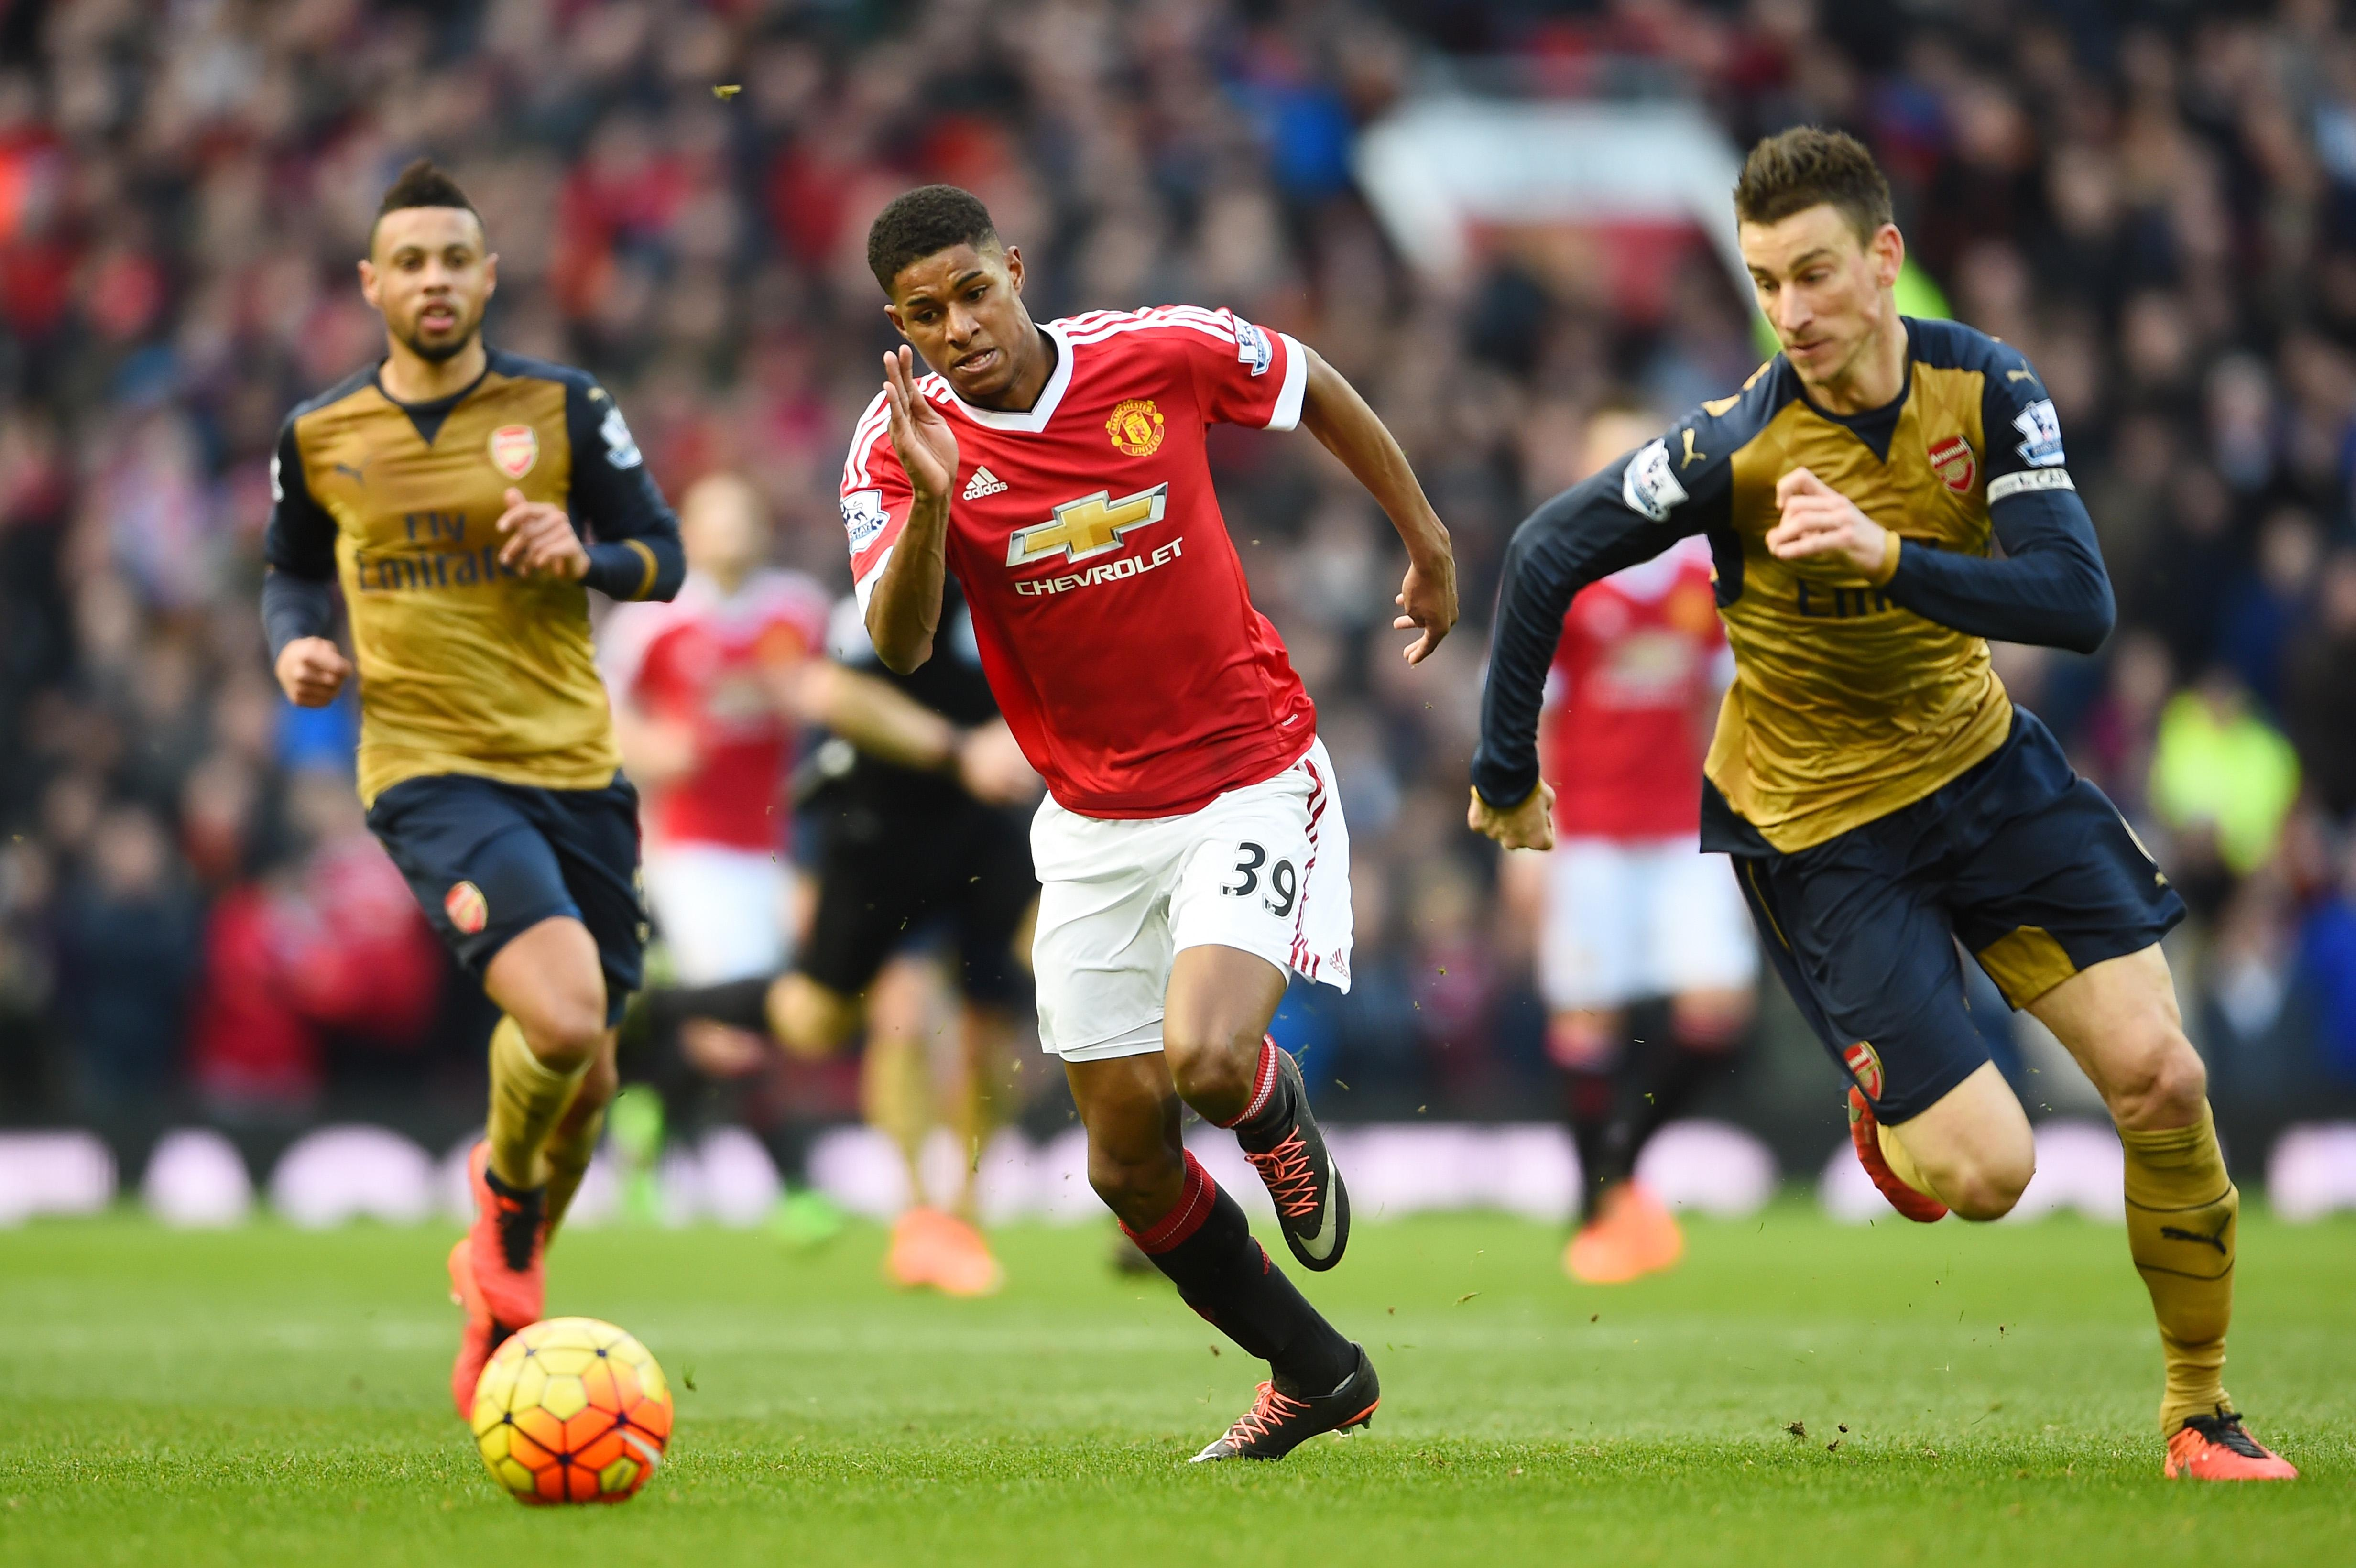 Arsenal looking to end Old Trafford woe